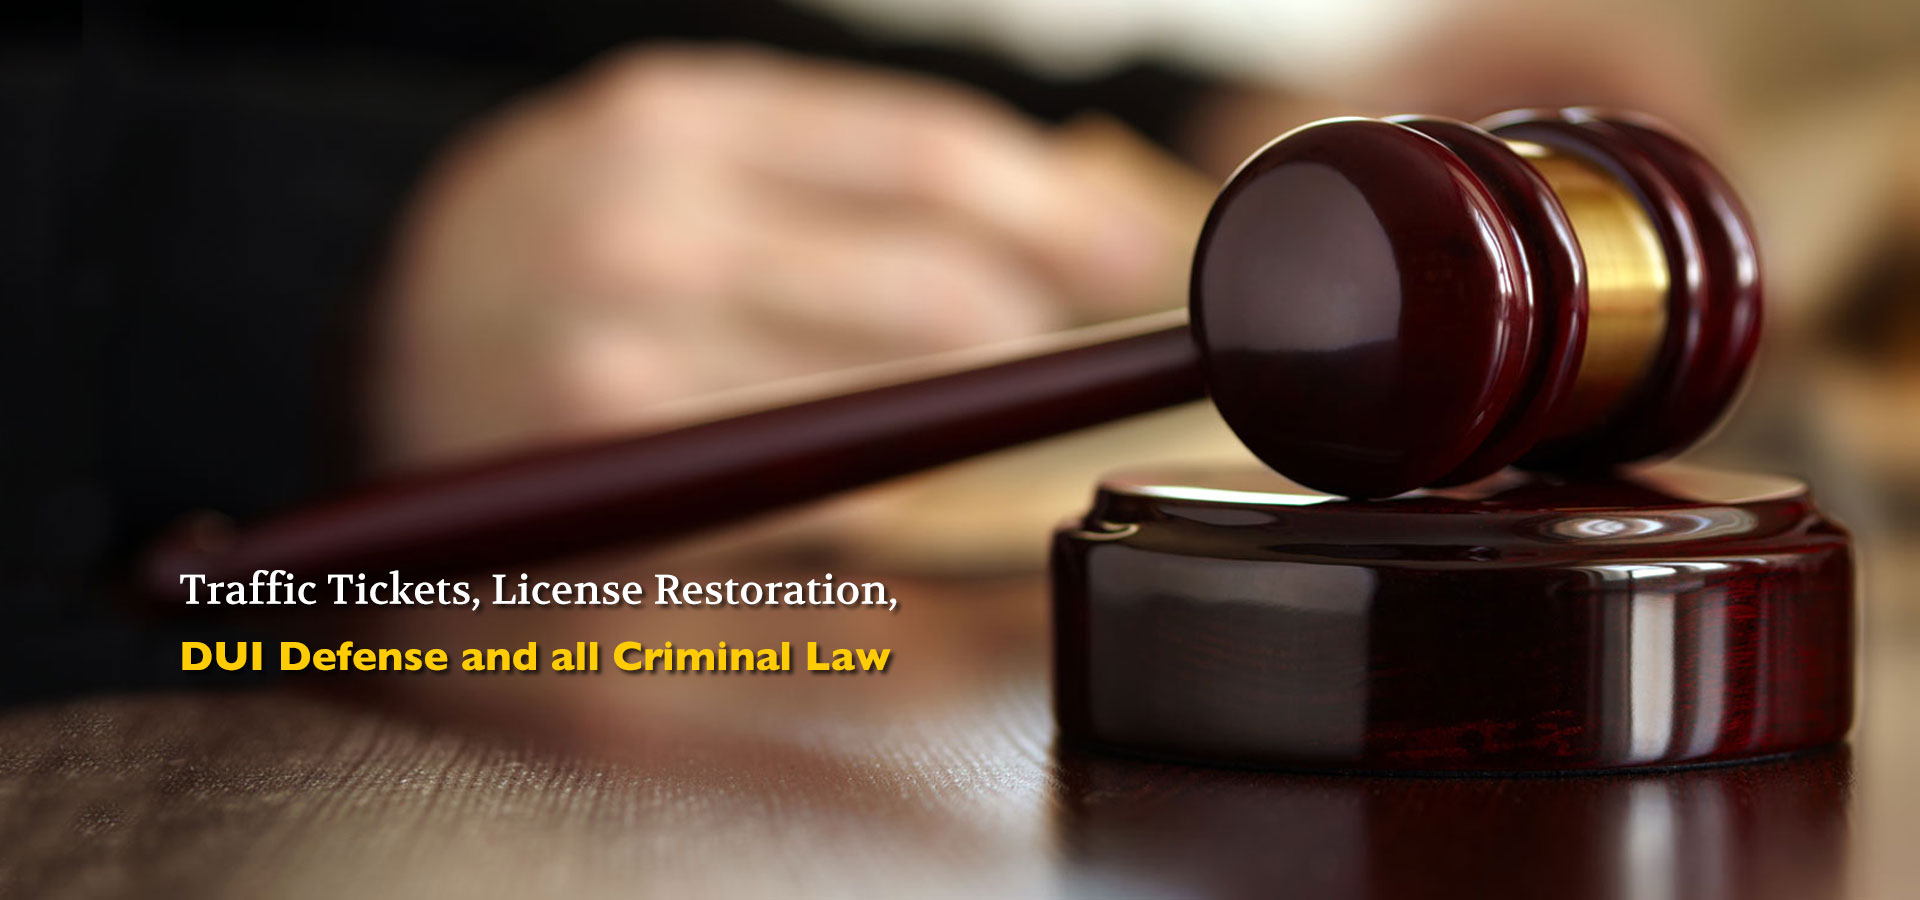 West Bloomfield Charter Township DUI Lawyers MI